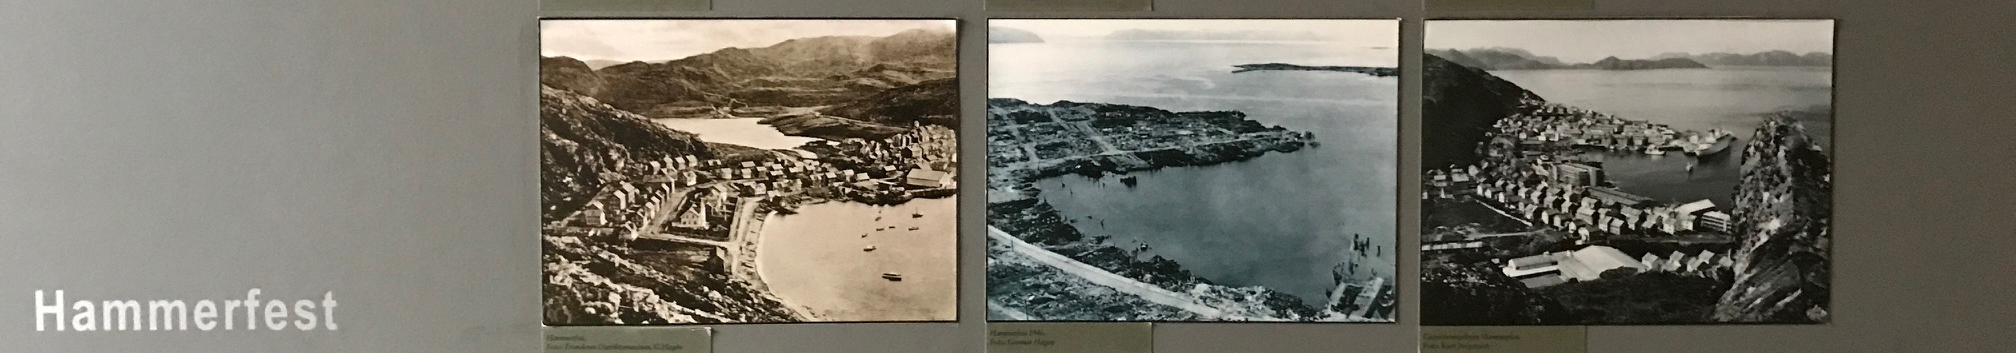 Wall display of Hammerfest before WWII, in 1945, and after the war